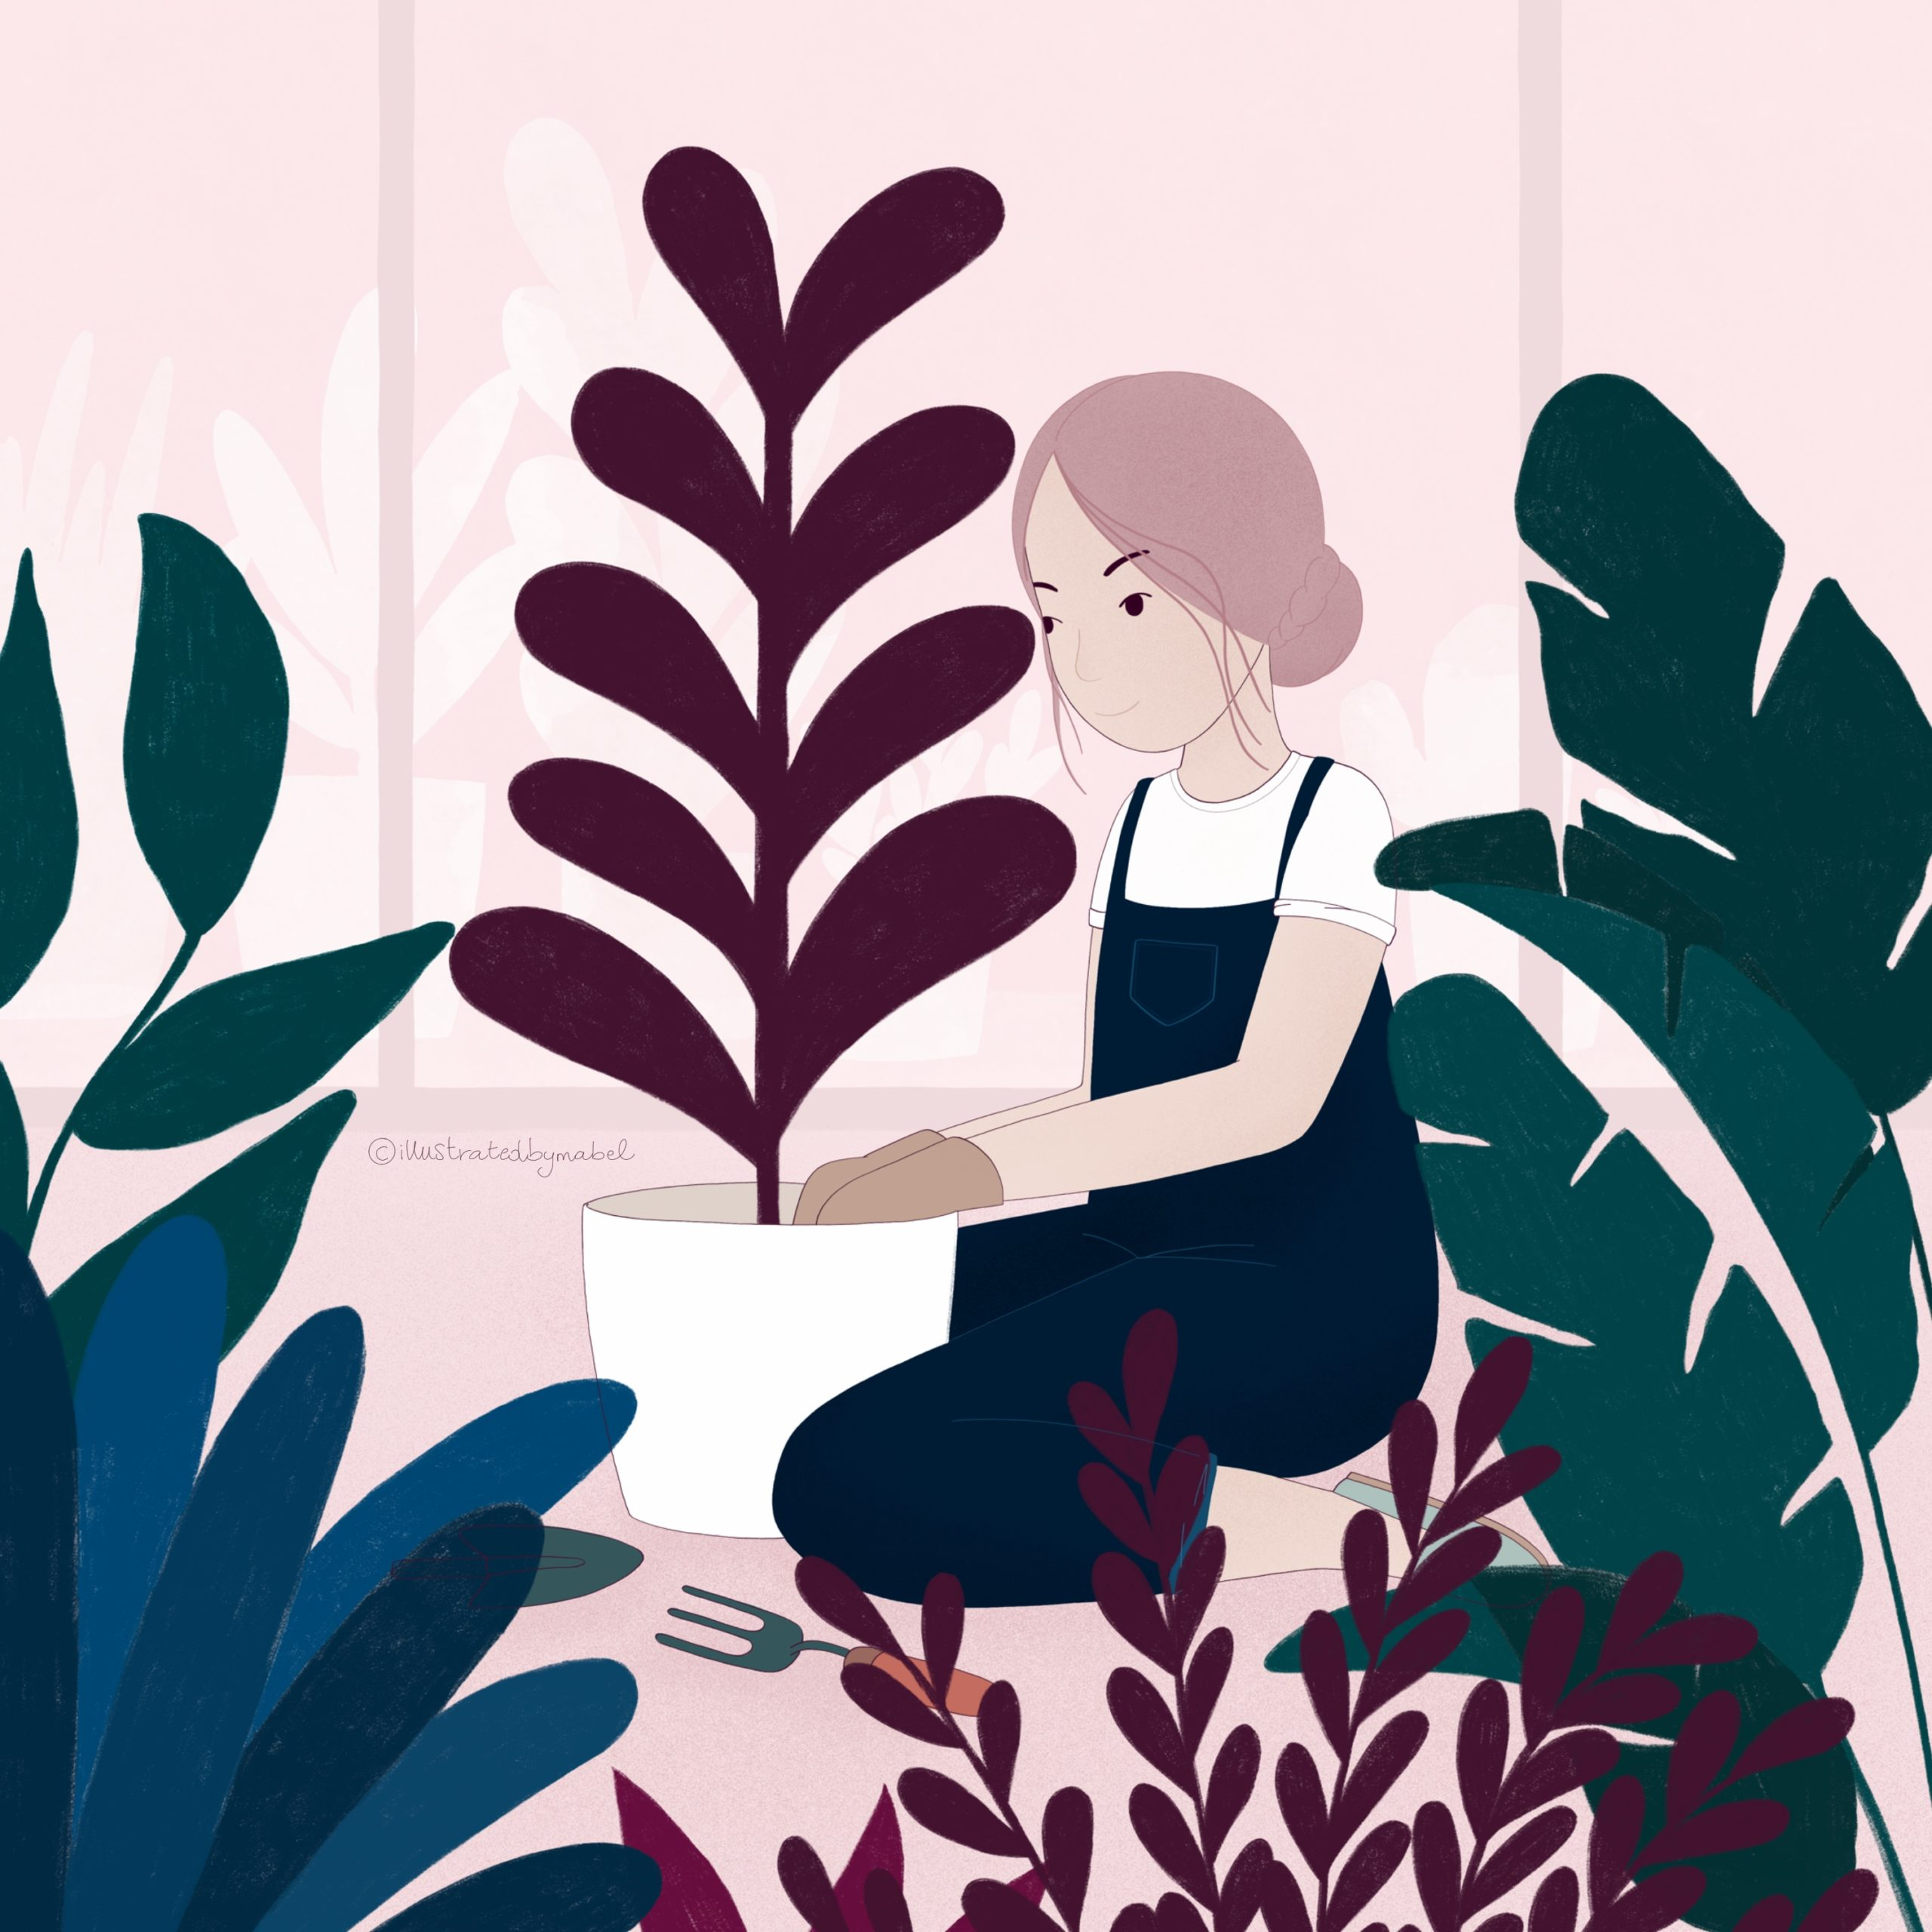 Illustration of a girl gardening inside a greenhouse